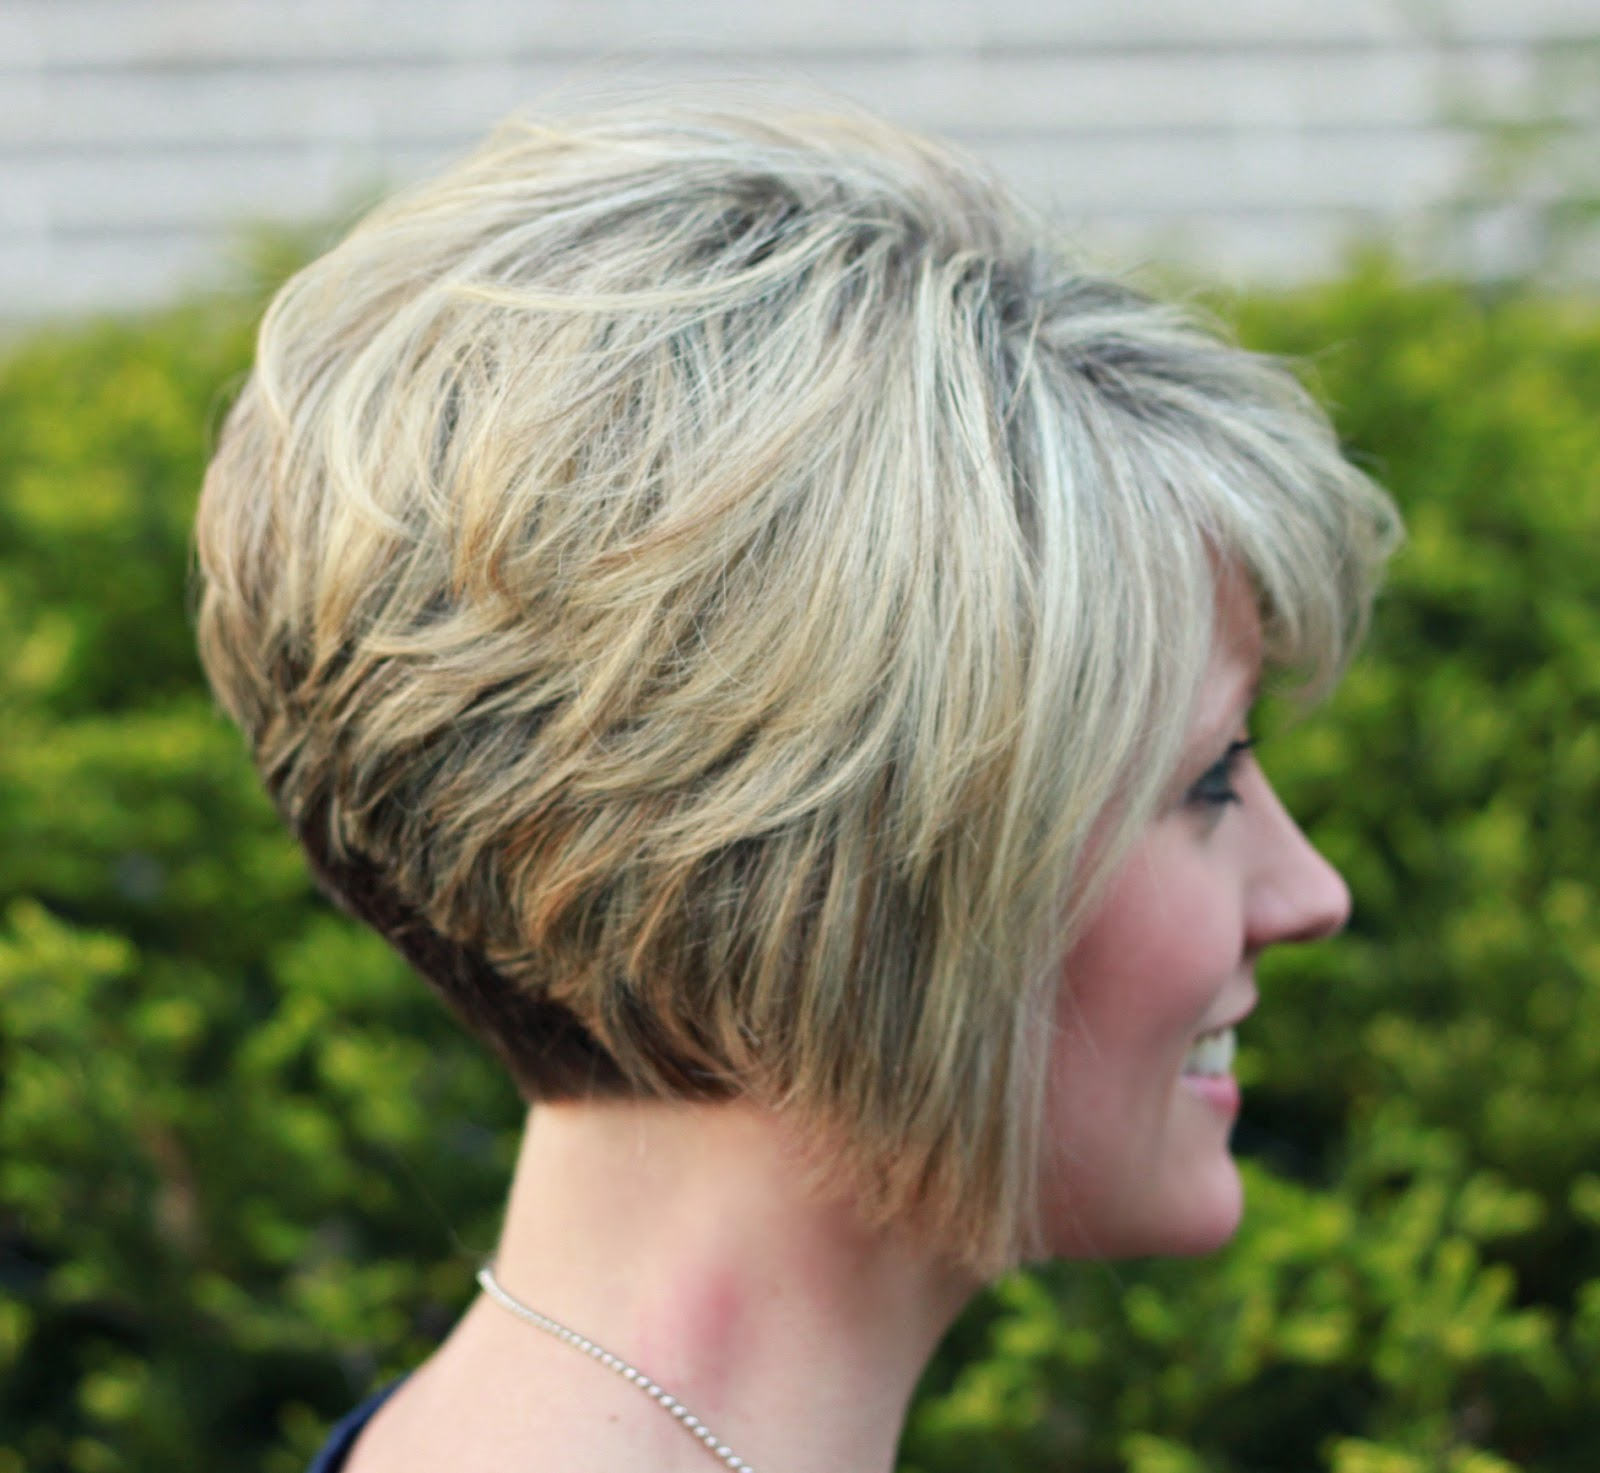 Short Layered Bob Hairstyles Back View Short Hairstyles for Women